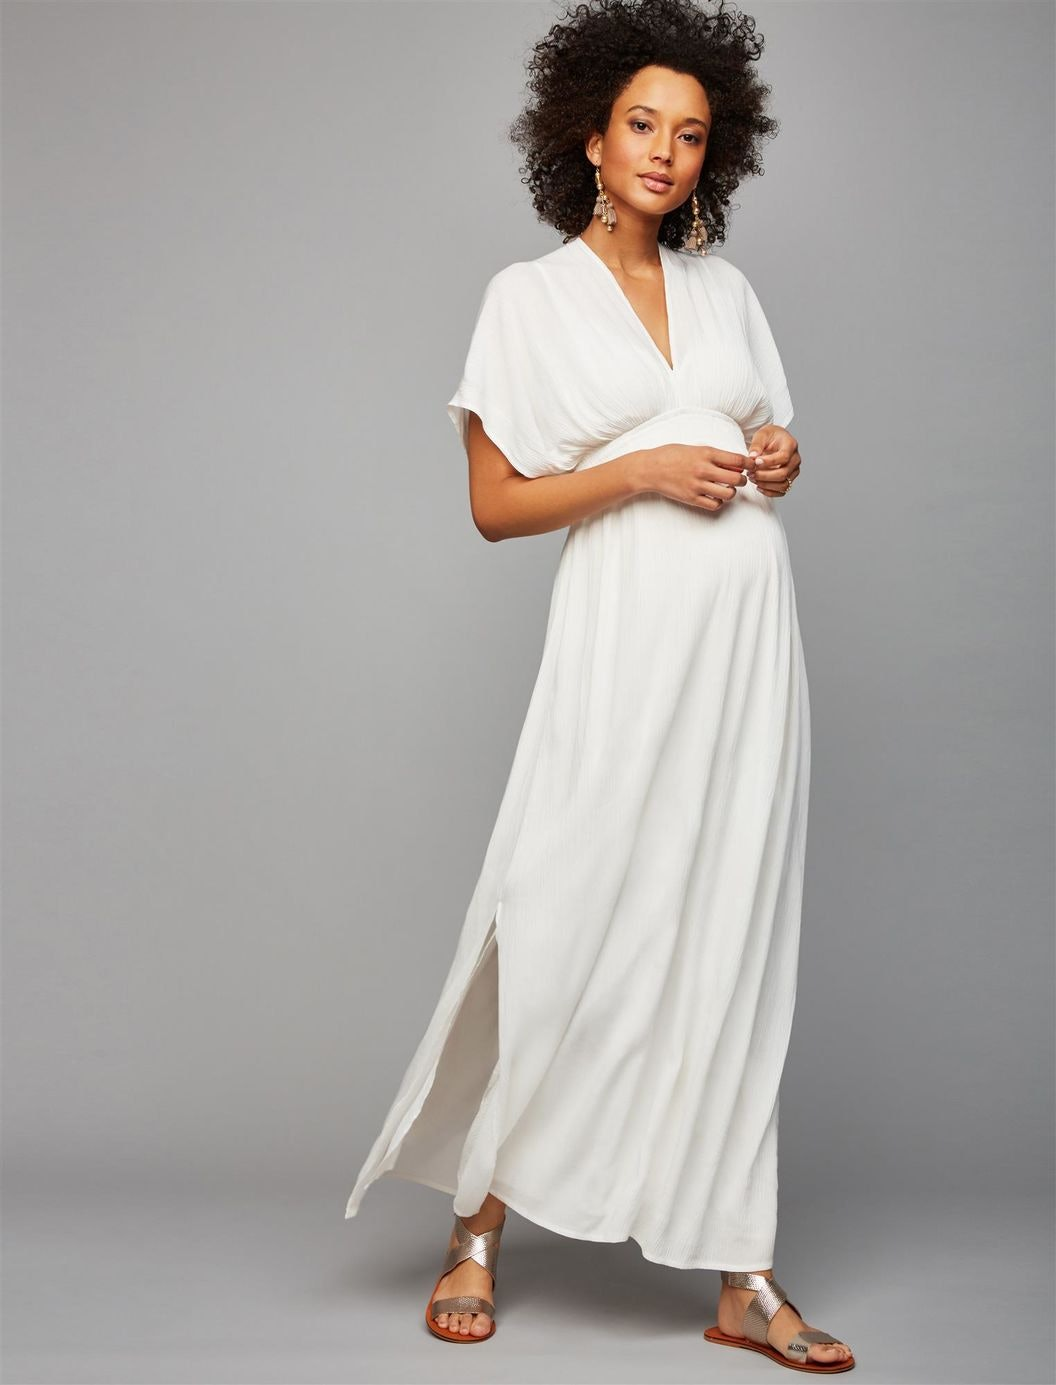 5 u0027Star Warsu0027 Costumes For Pregnant Women That Are Perfect For A Galaxy Far Far Away  sc 1 st  Romper & 5 u0027Star Warsu0027 Costumes For Pregnant Women That Are Perfect For A ...